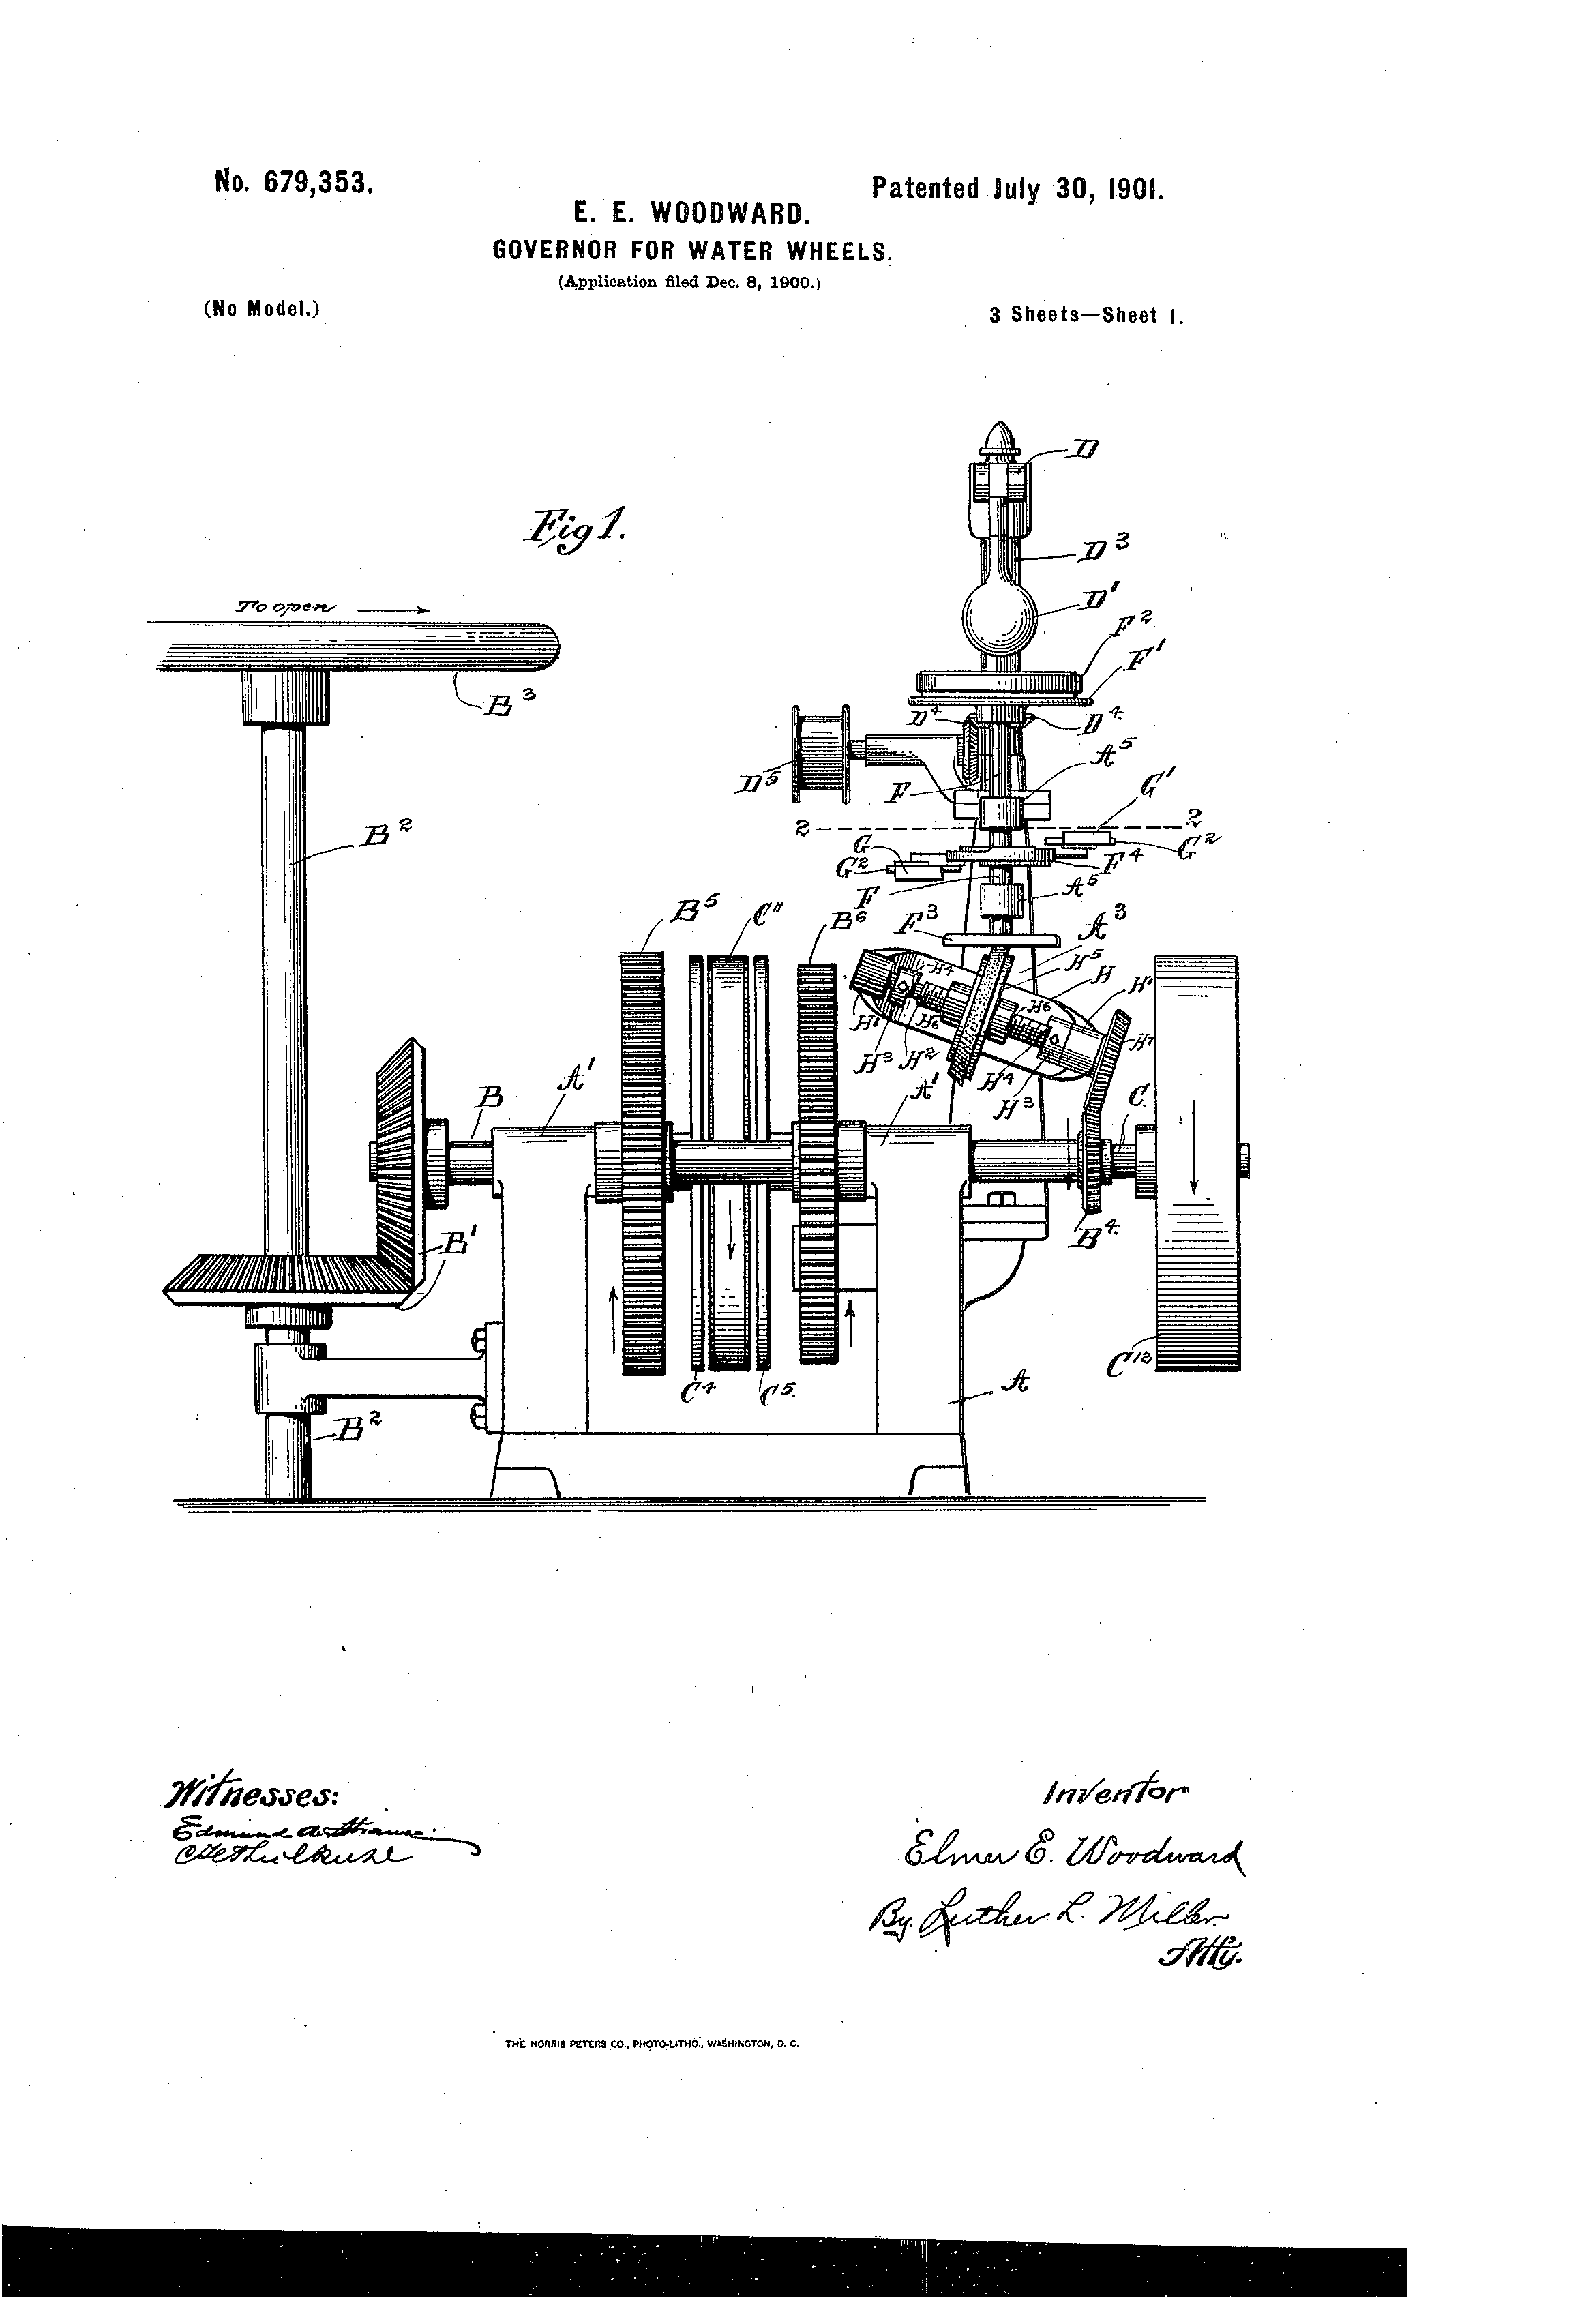 Woodward Governor Company's patent 679,353. The